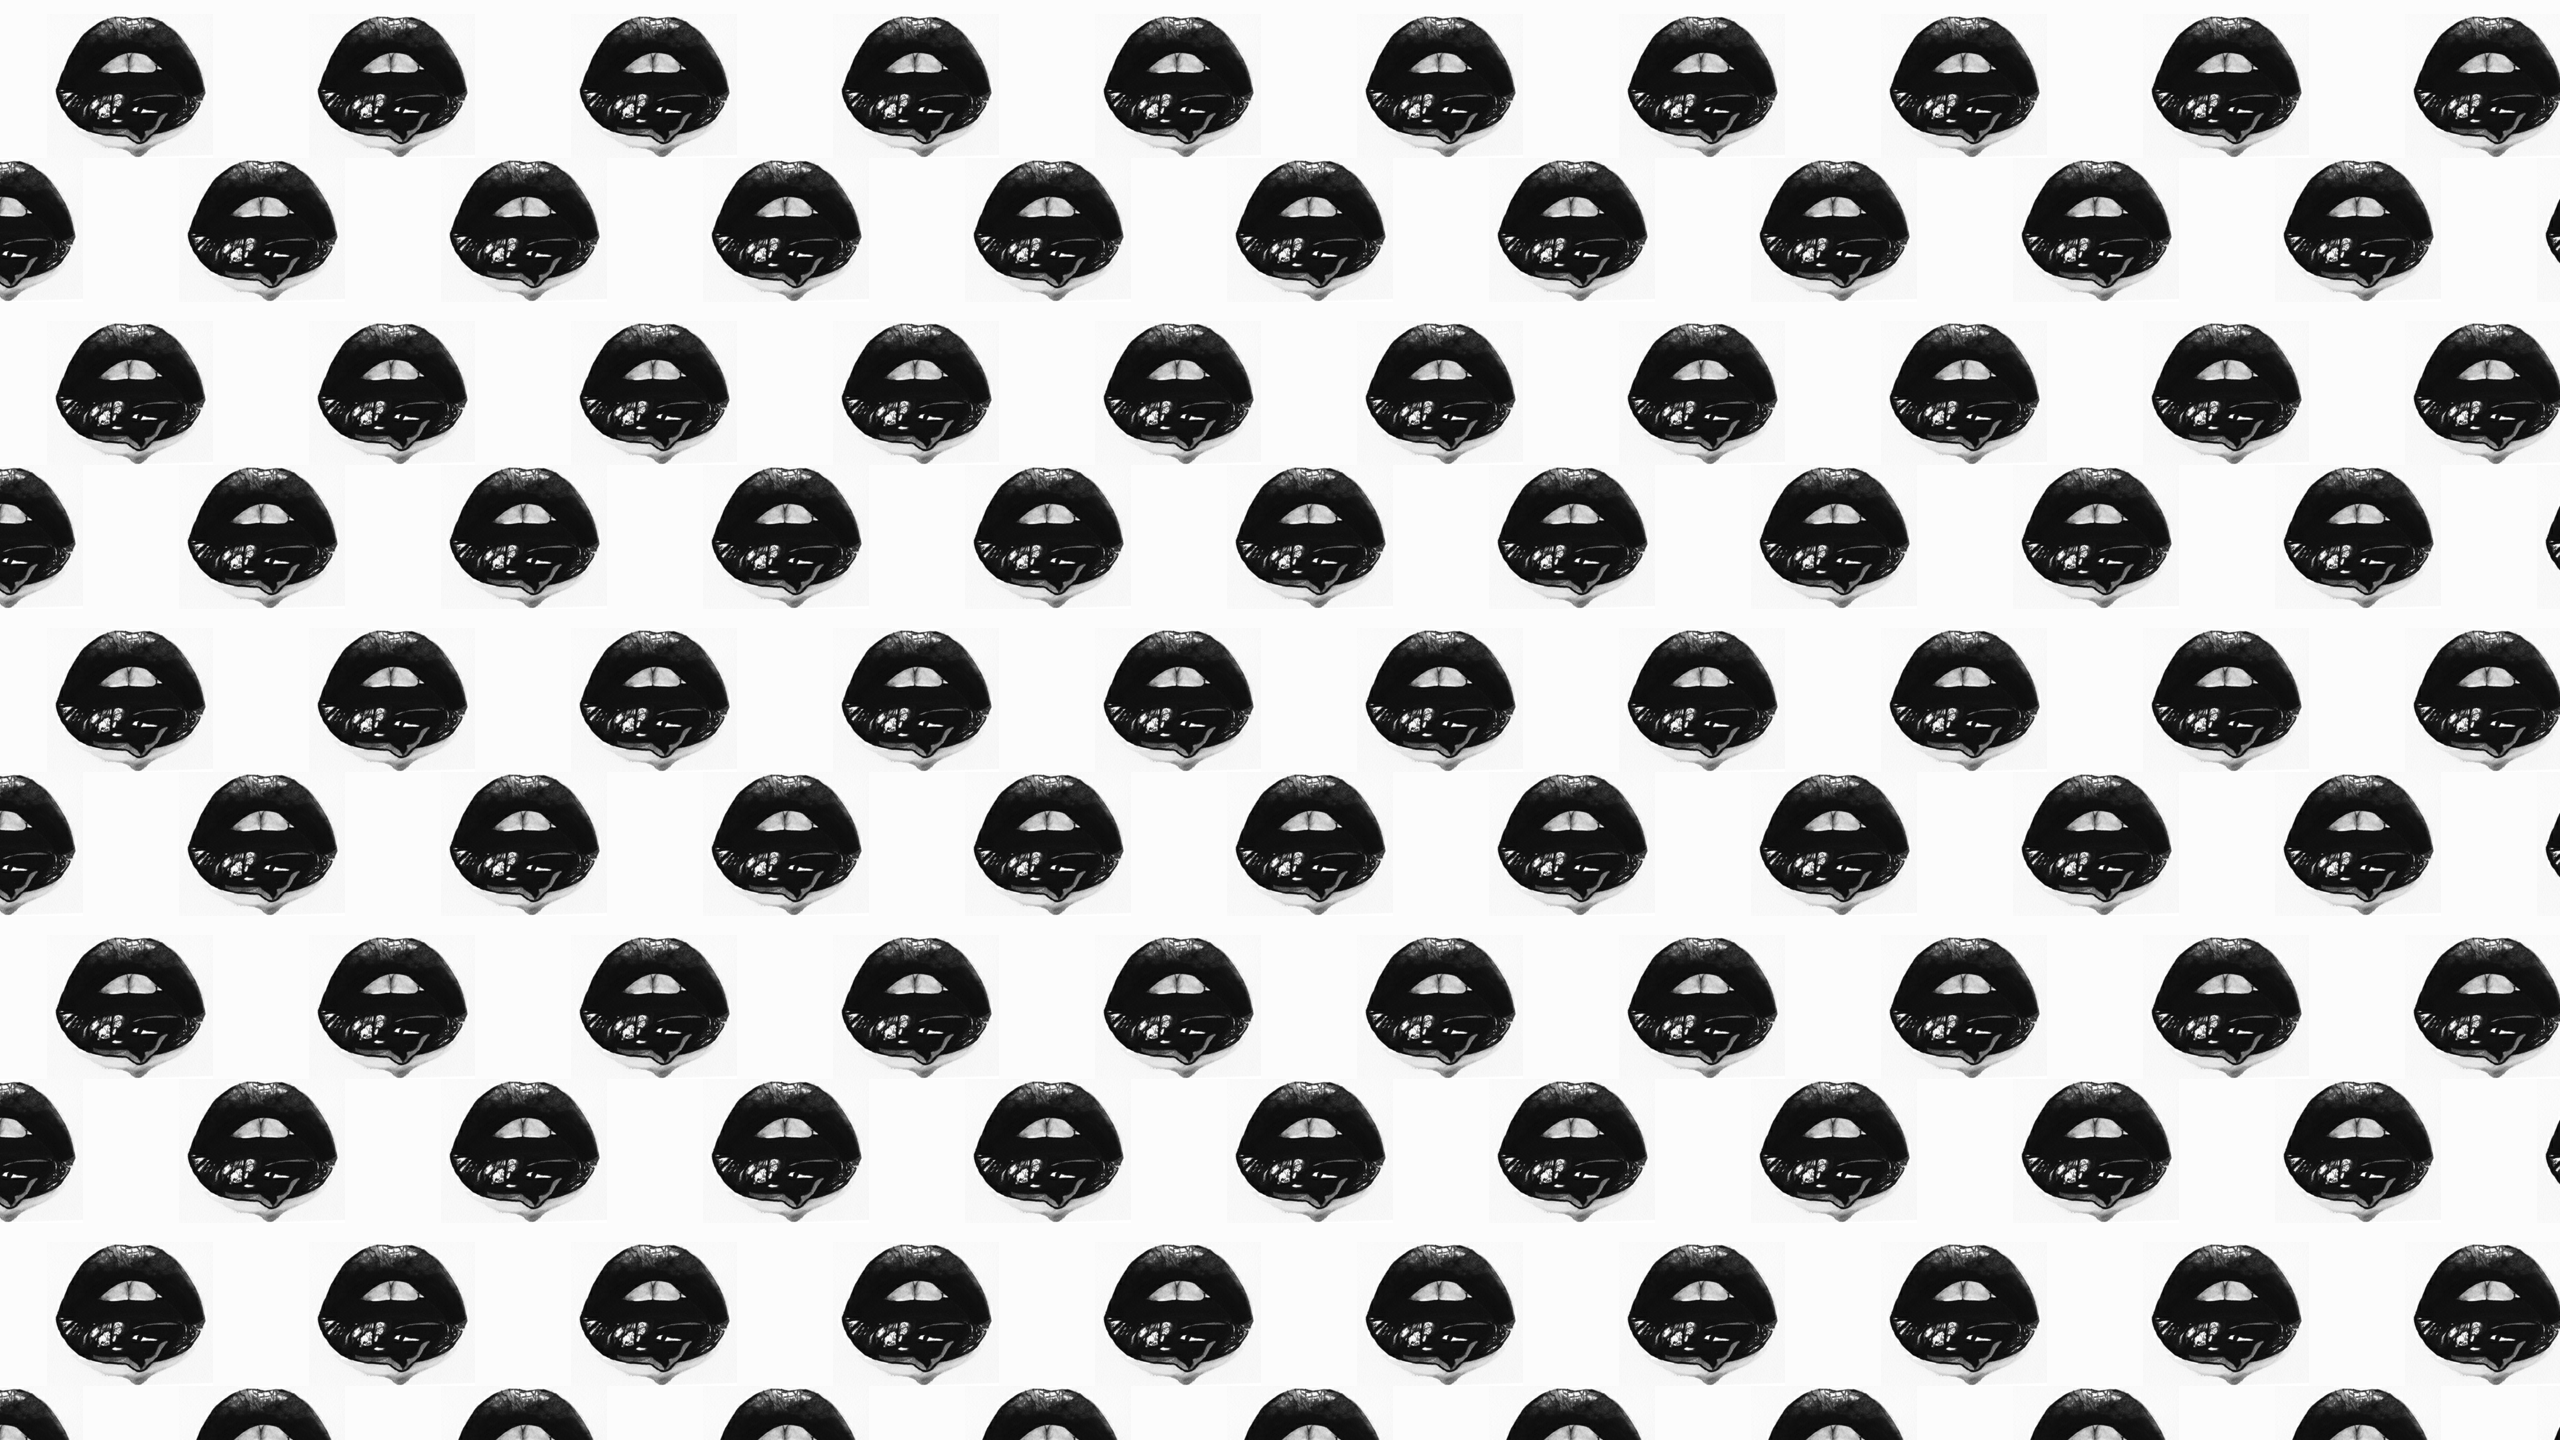 tumblr desktop backgrounds black and white tumblr desktop backgrounds black and white